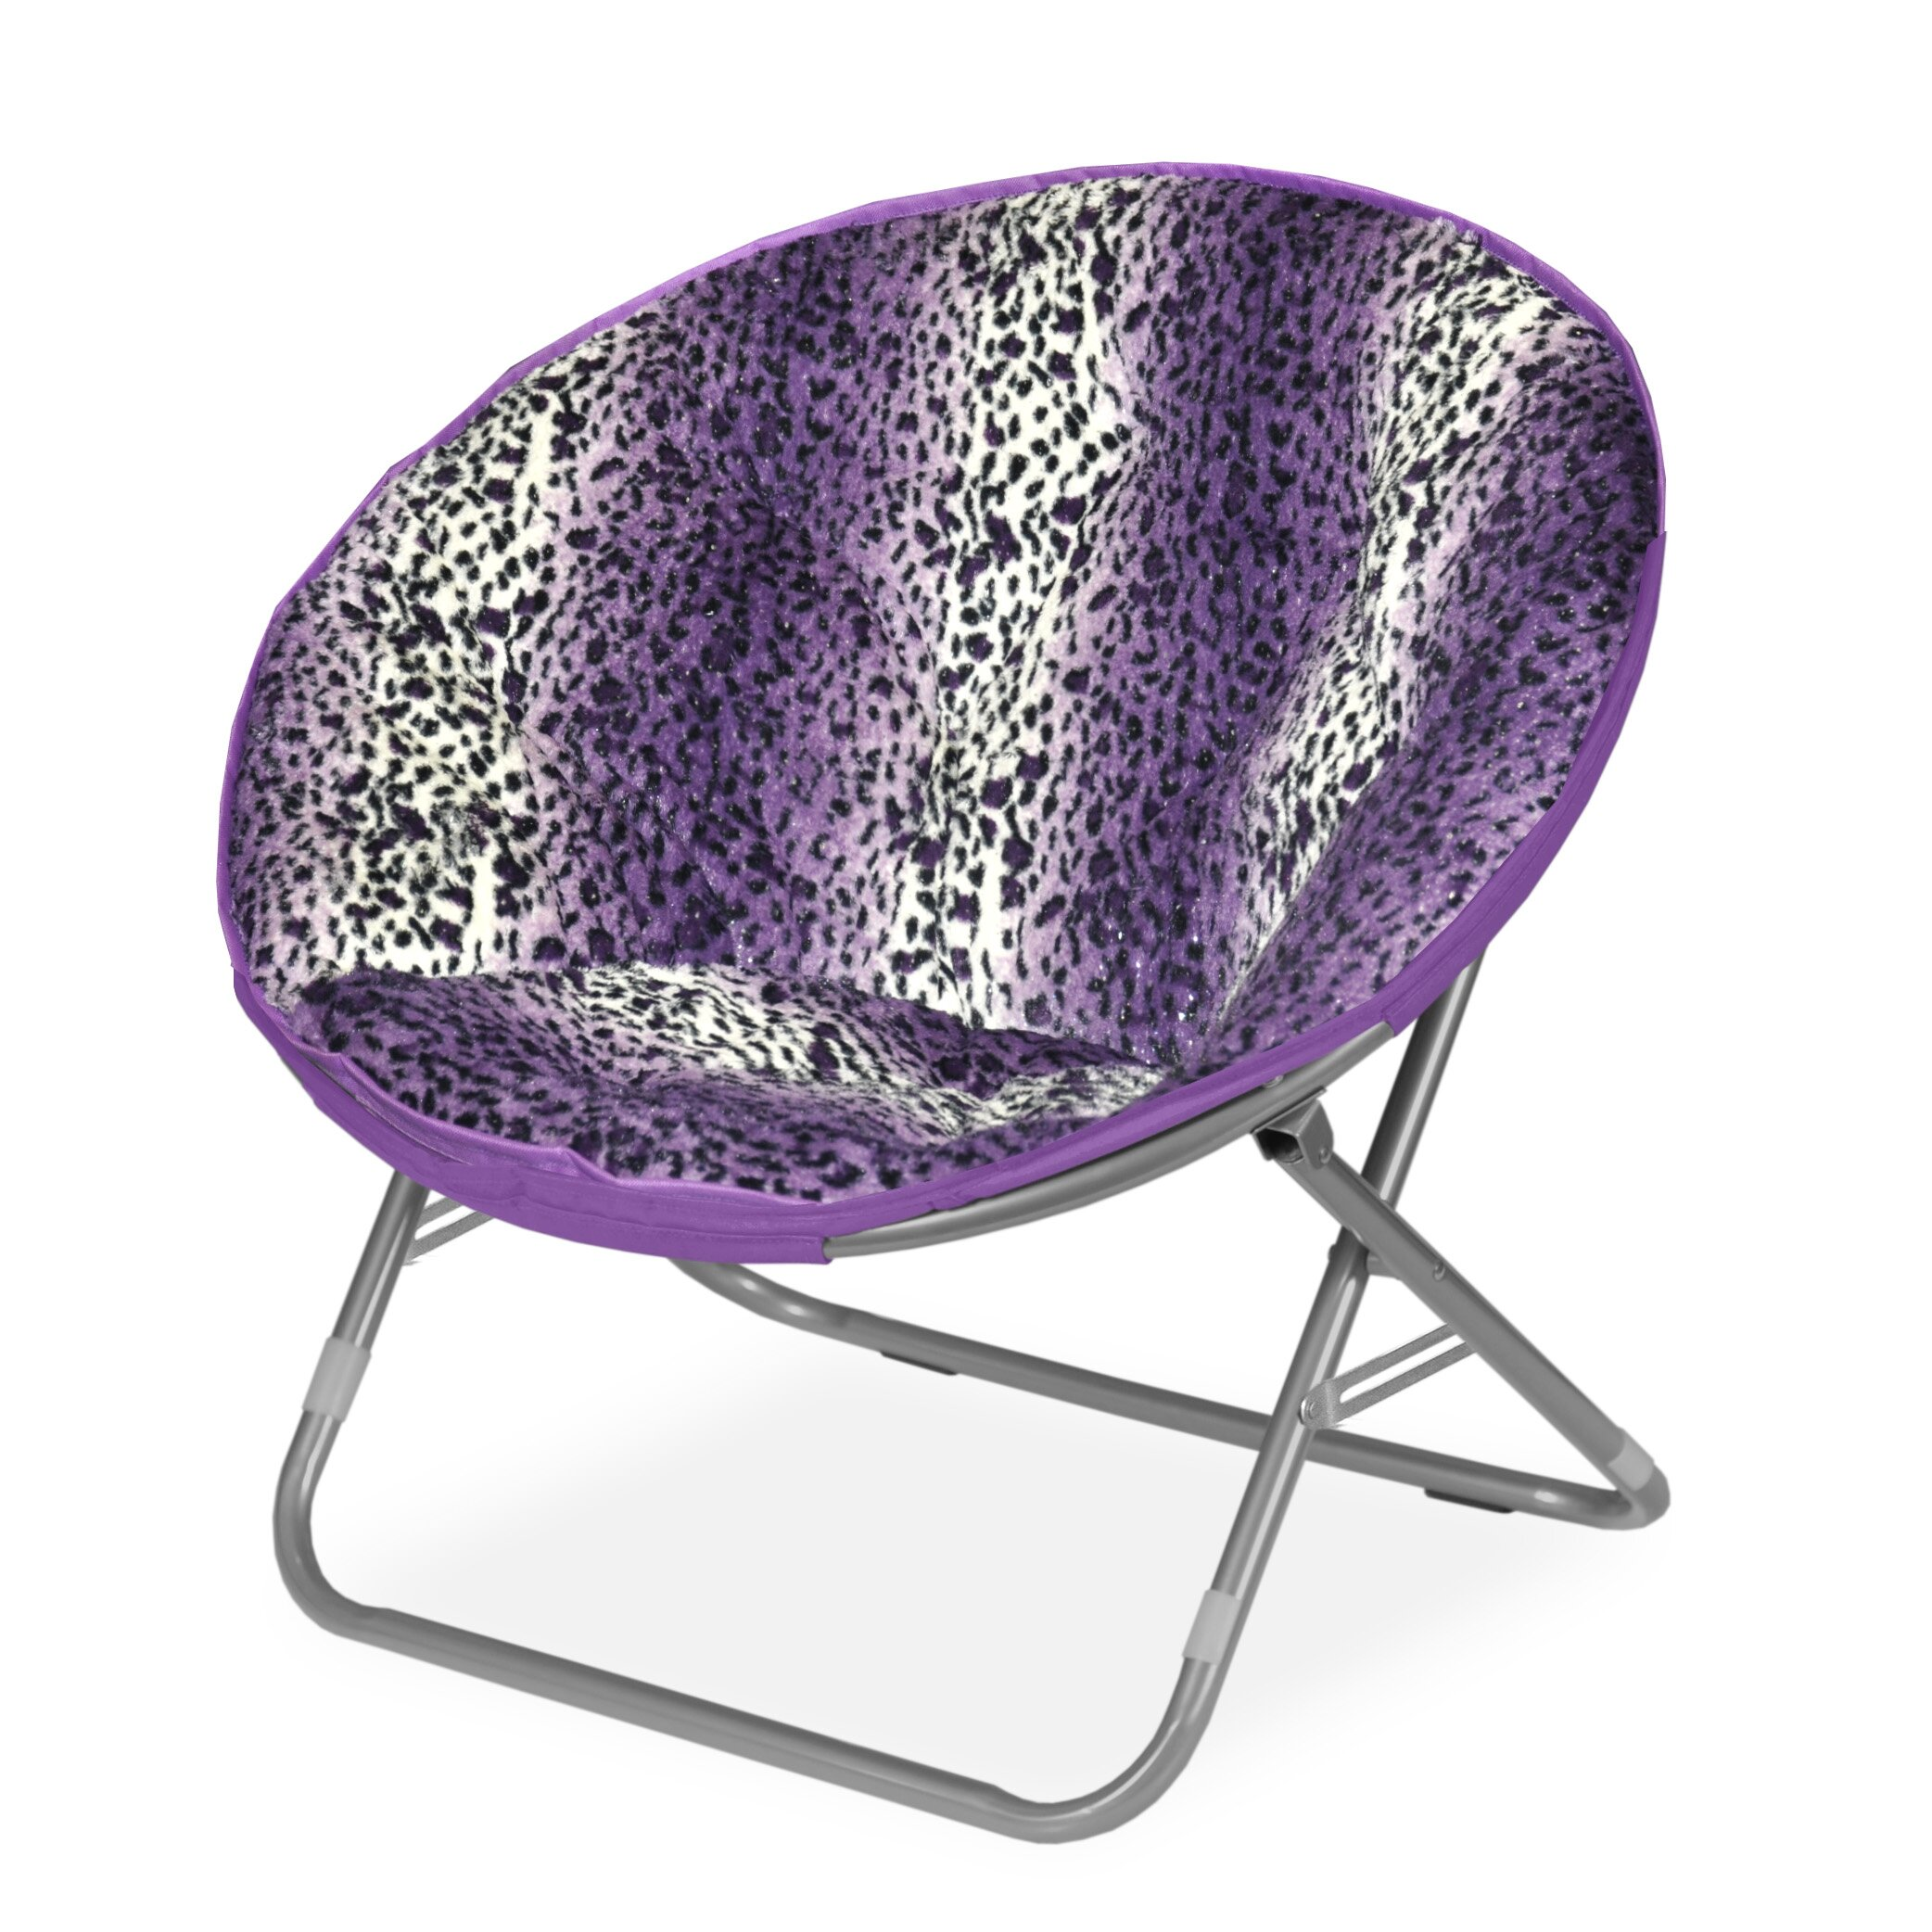 Idea Nuova Rock Your Room Leopard Ombre Faux Fur Saucer Papasam Chair & Reviews | Wayfair